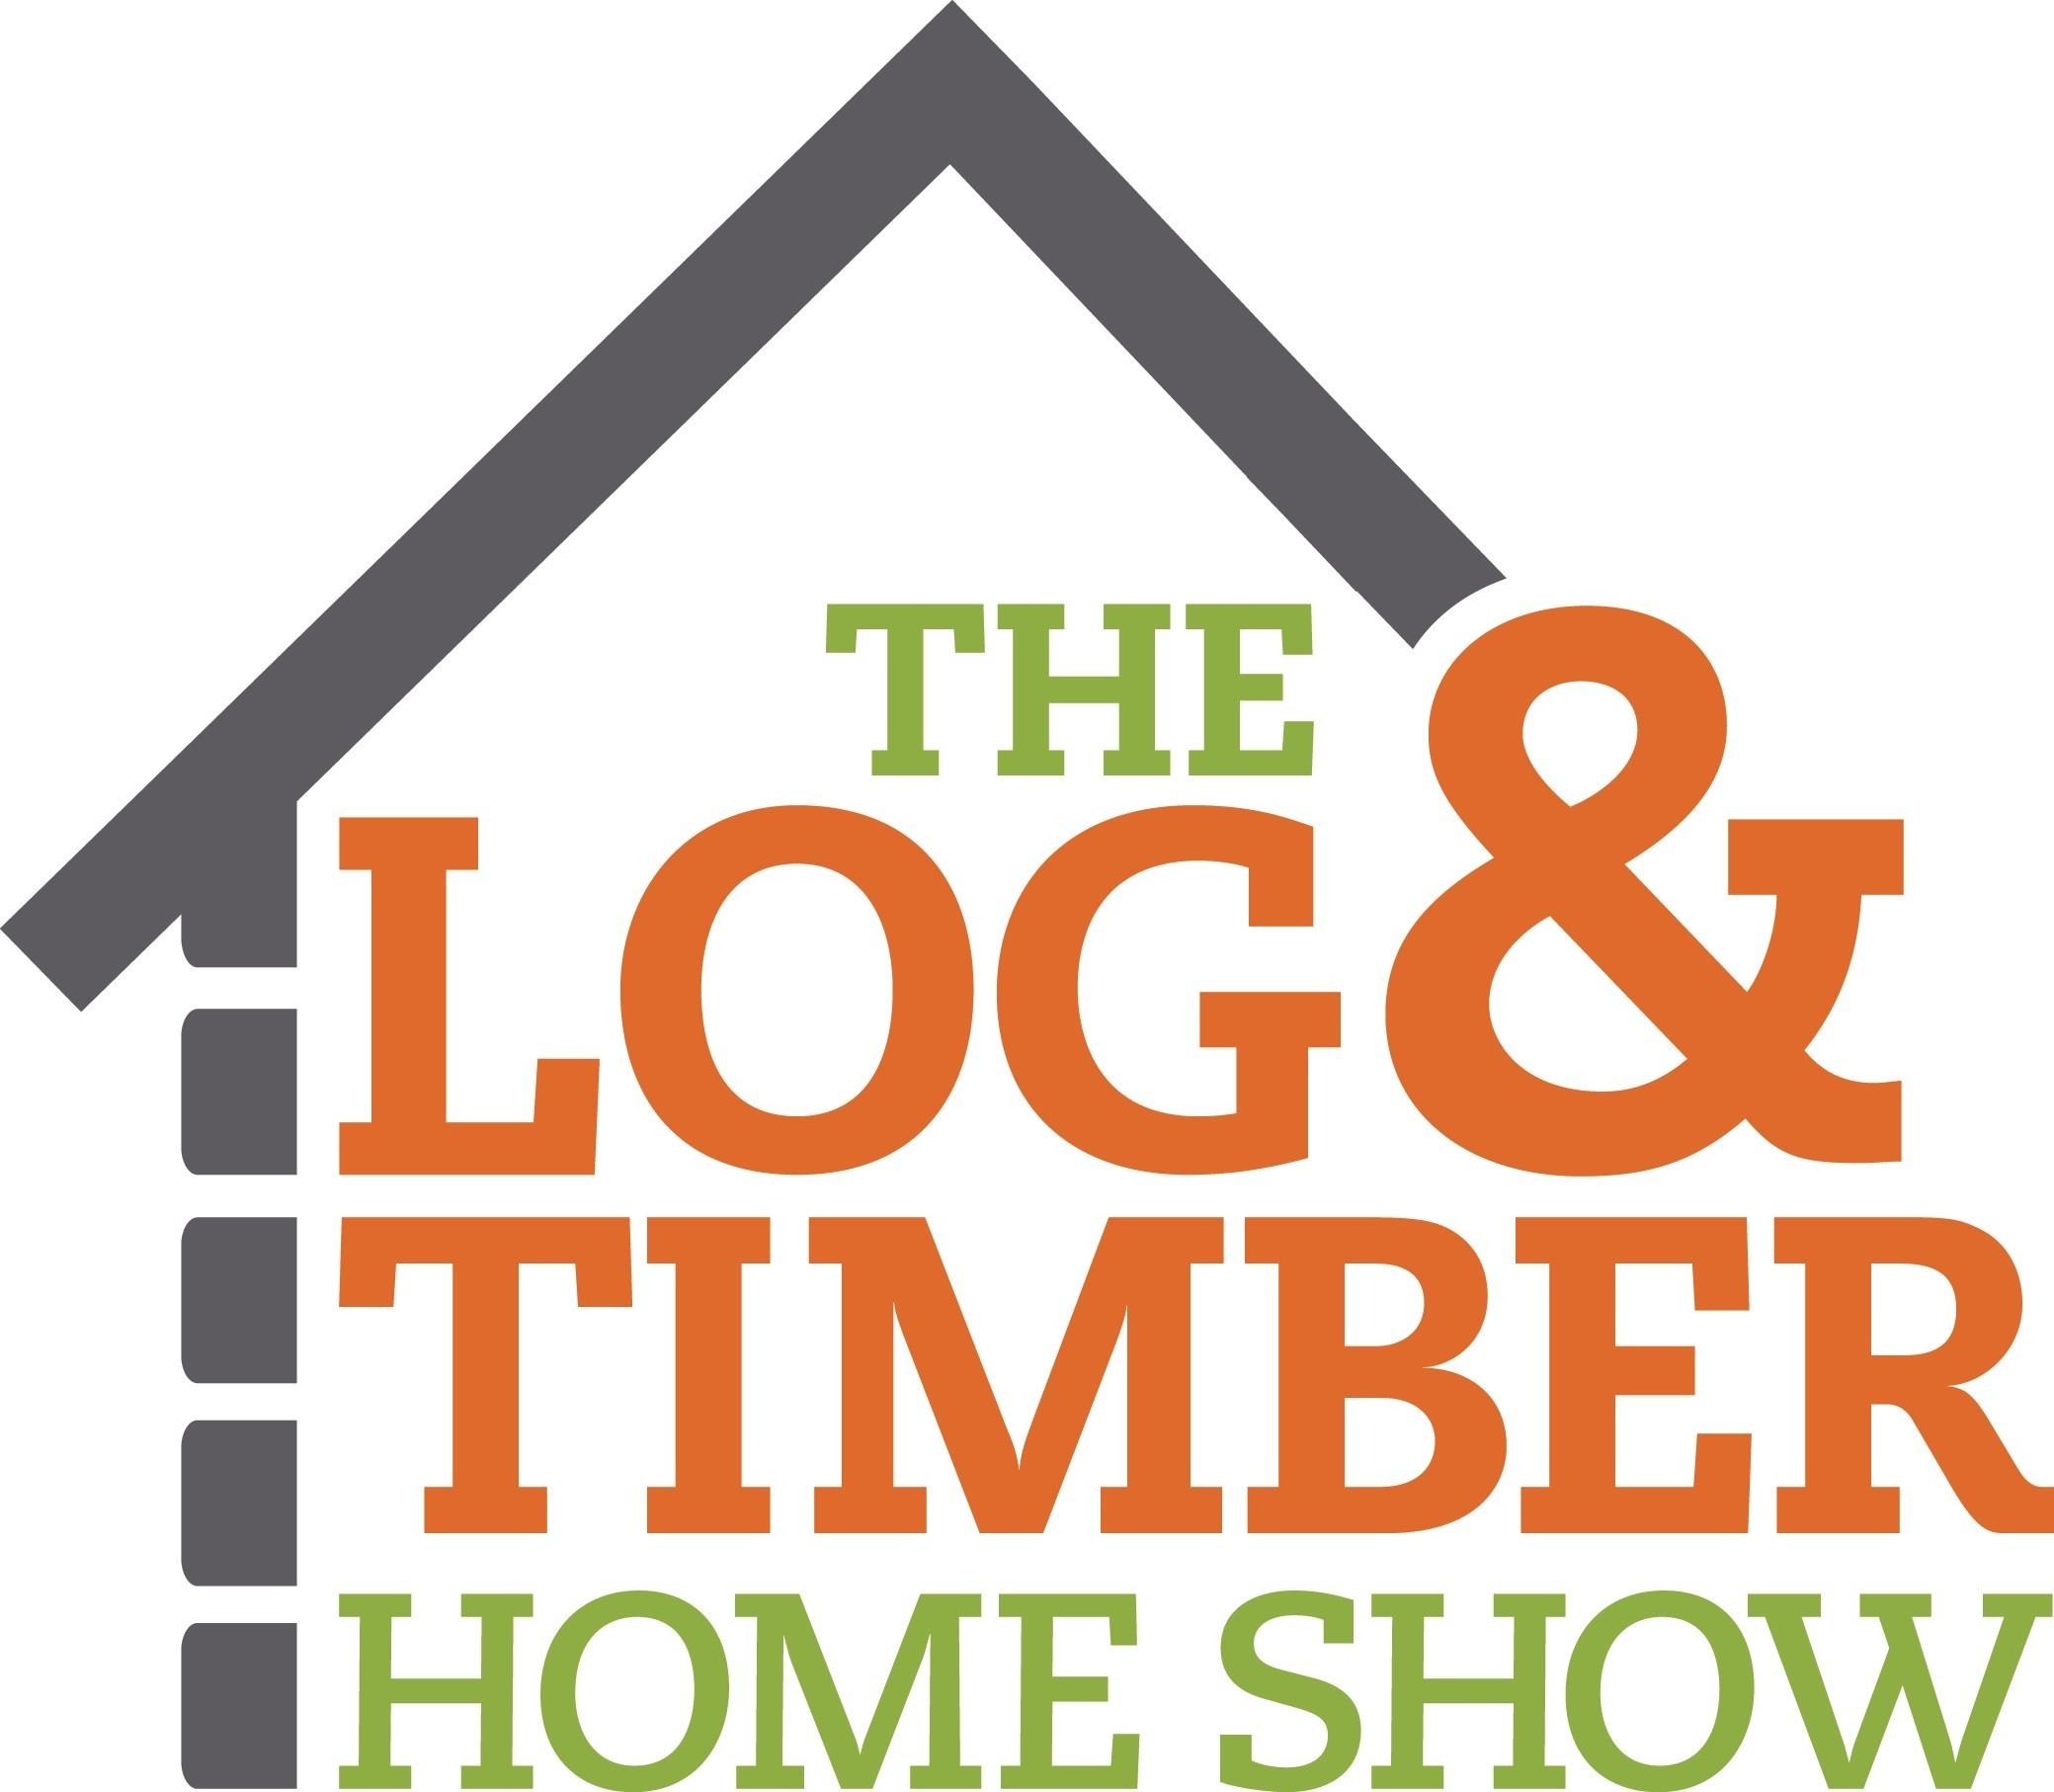 The Log & Timber Home Show has been hosting shows since 1995 in order to educate those looking to build a Log or Timber Frame Home through contact with industry experts, workshops, & more.